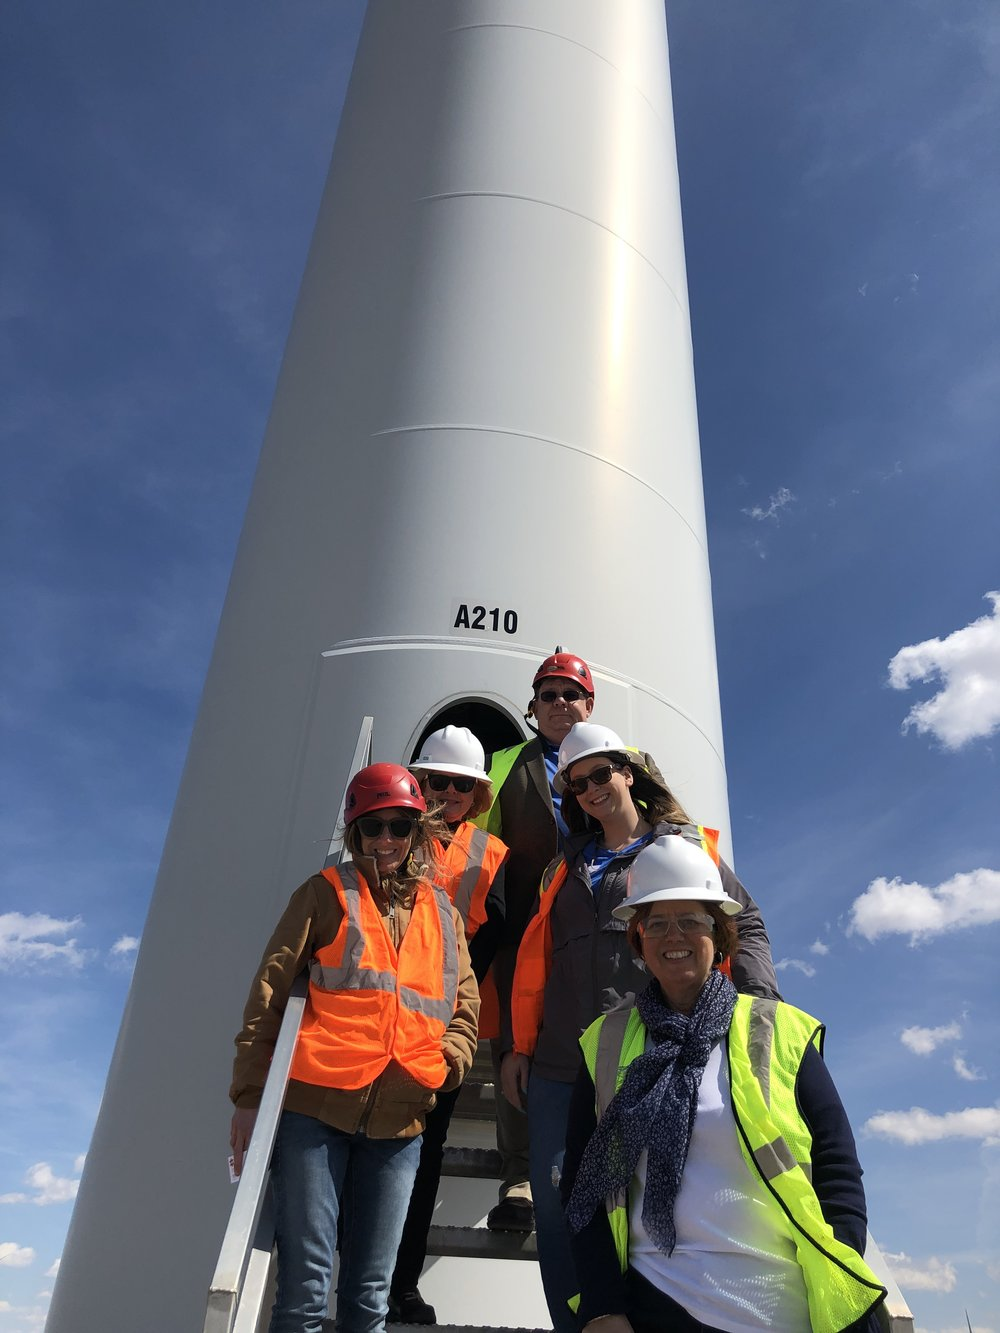 A perfect, windy day to see a turbine up-close at EDP Renewables Timber Roads II in Paulding County.  From the top:  Jerry Zielke, Paulding County Economic Development Inc. Director;  LuAnne Cook, Office of the Governor NW Regional Liaison;  Mikayla Pieper, Paulding Chamber of Commerce Executive Director;  Erin Bowser, EDP Renewables;  Susan Munroe, Chambers for Innovation and Clean Energy.